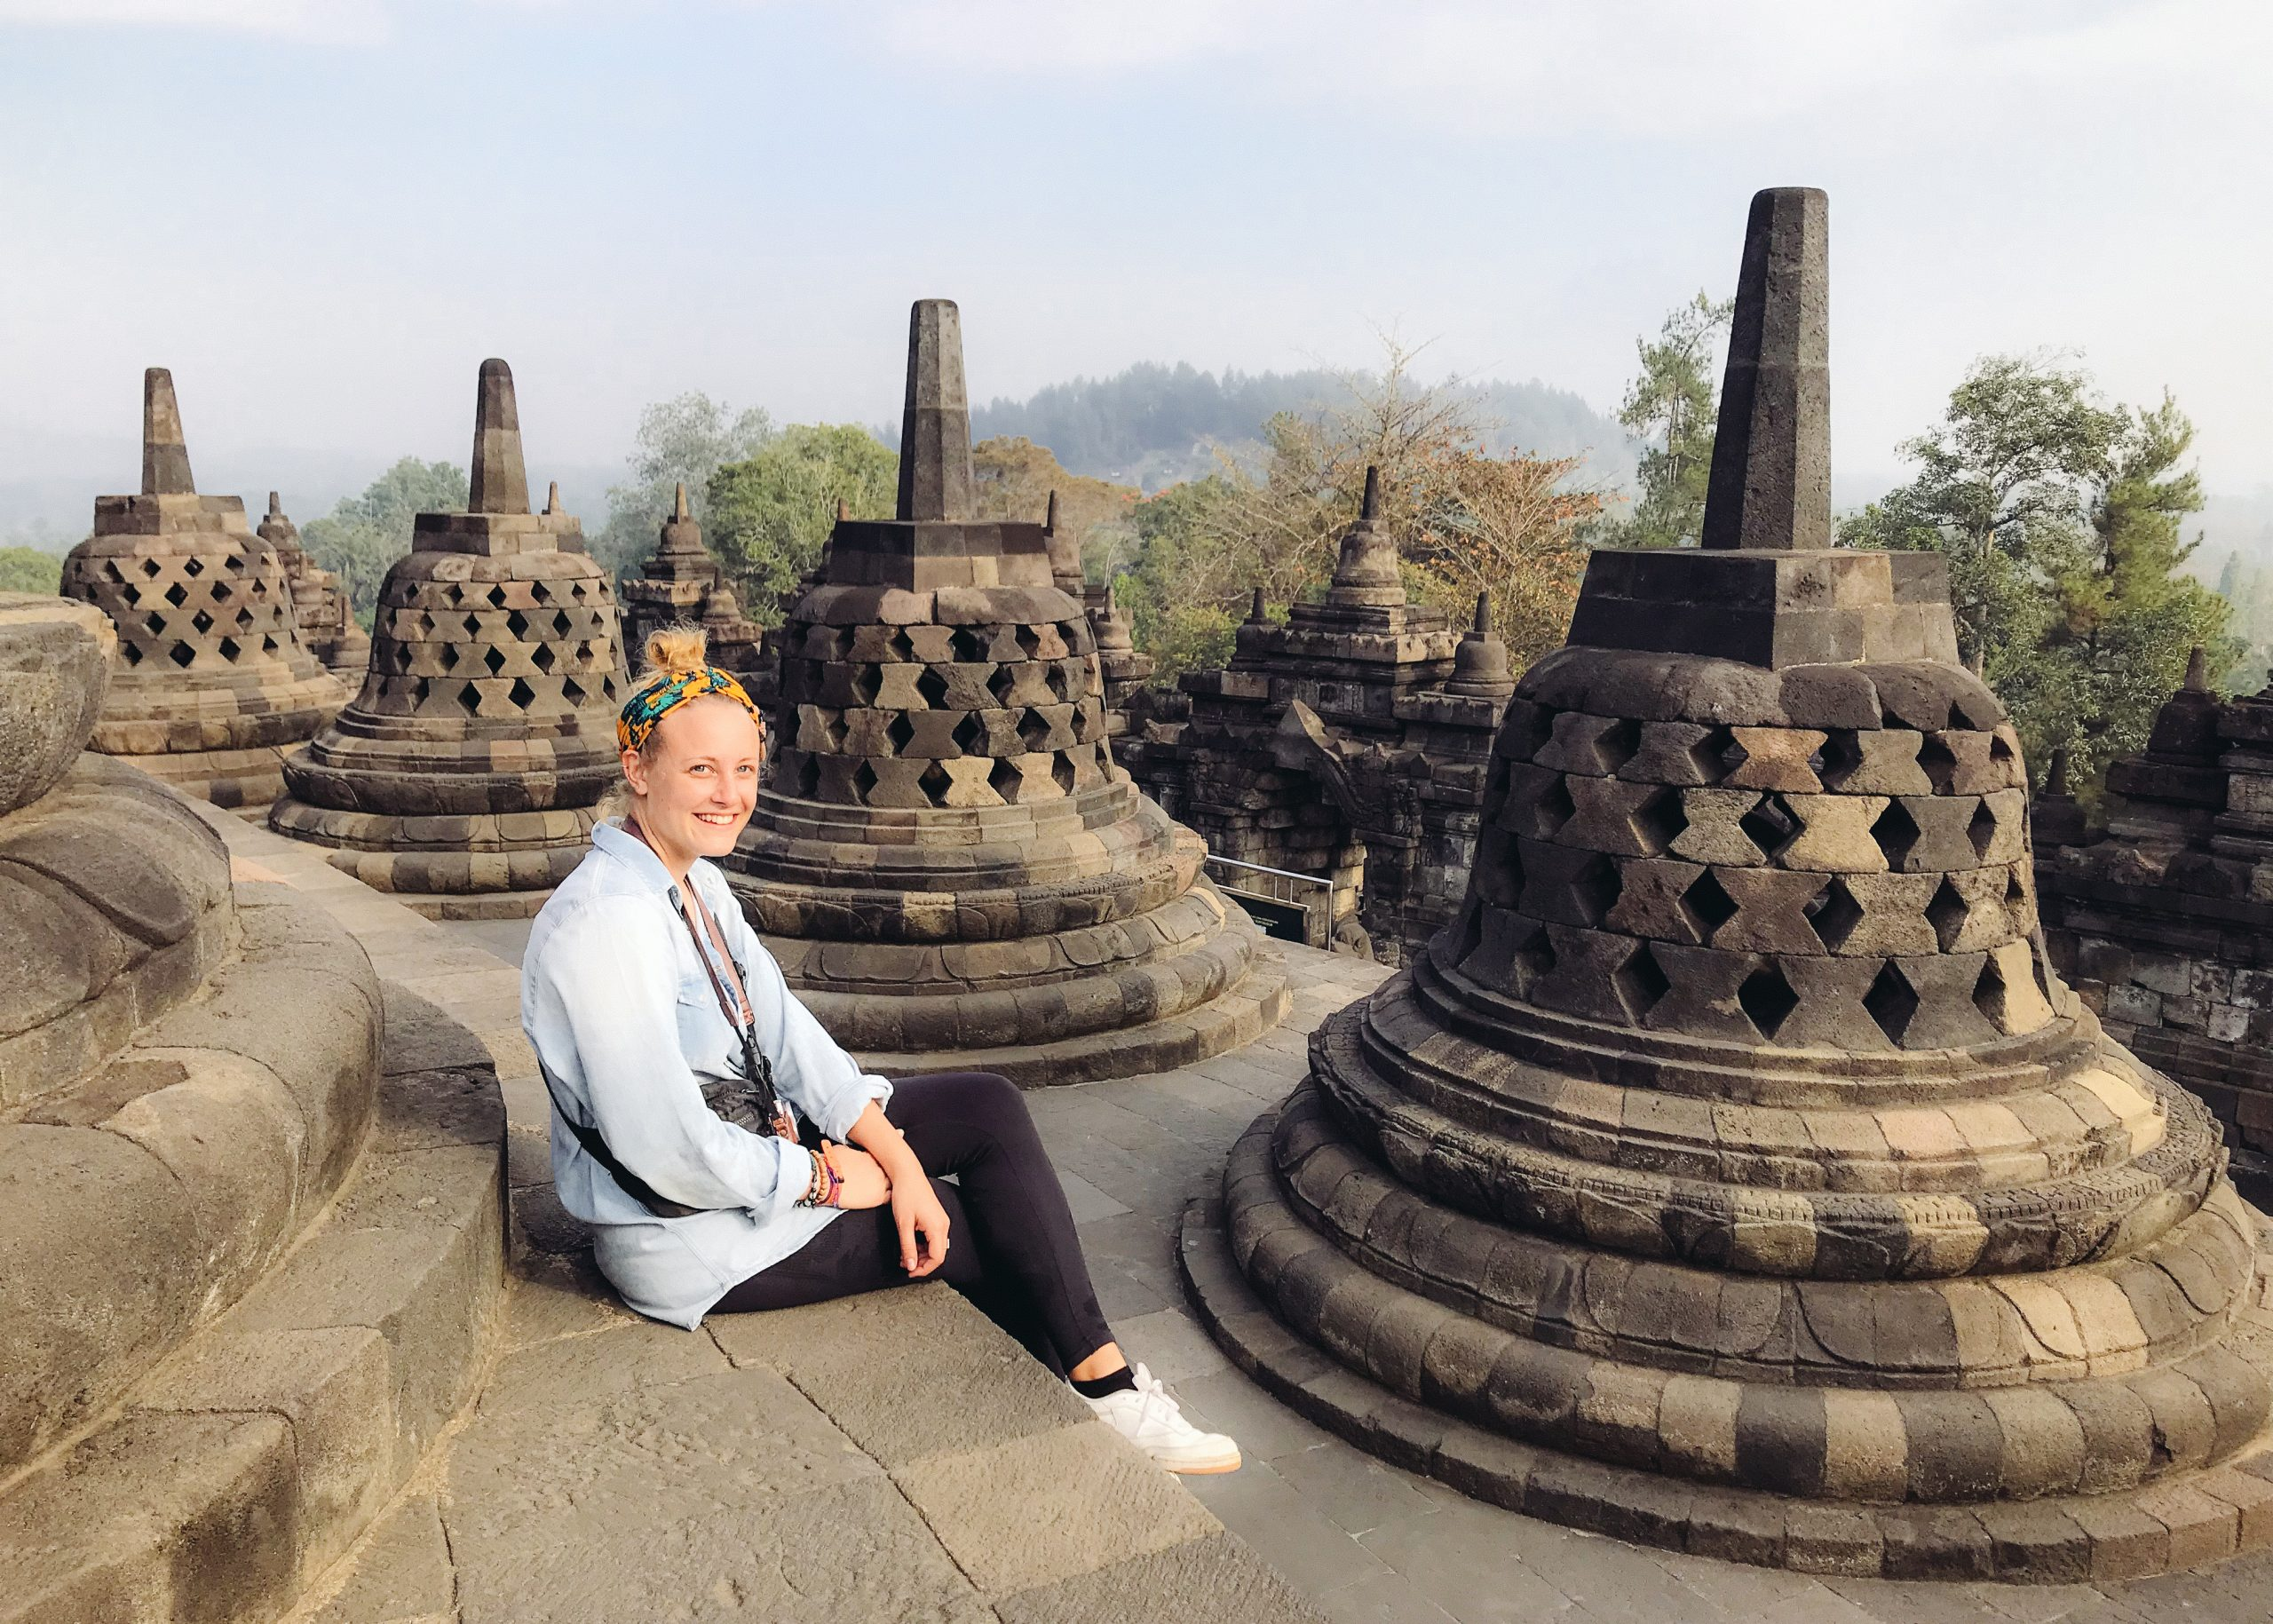 Sarah the Borobodur temple complex with bell shaped stupors